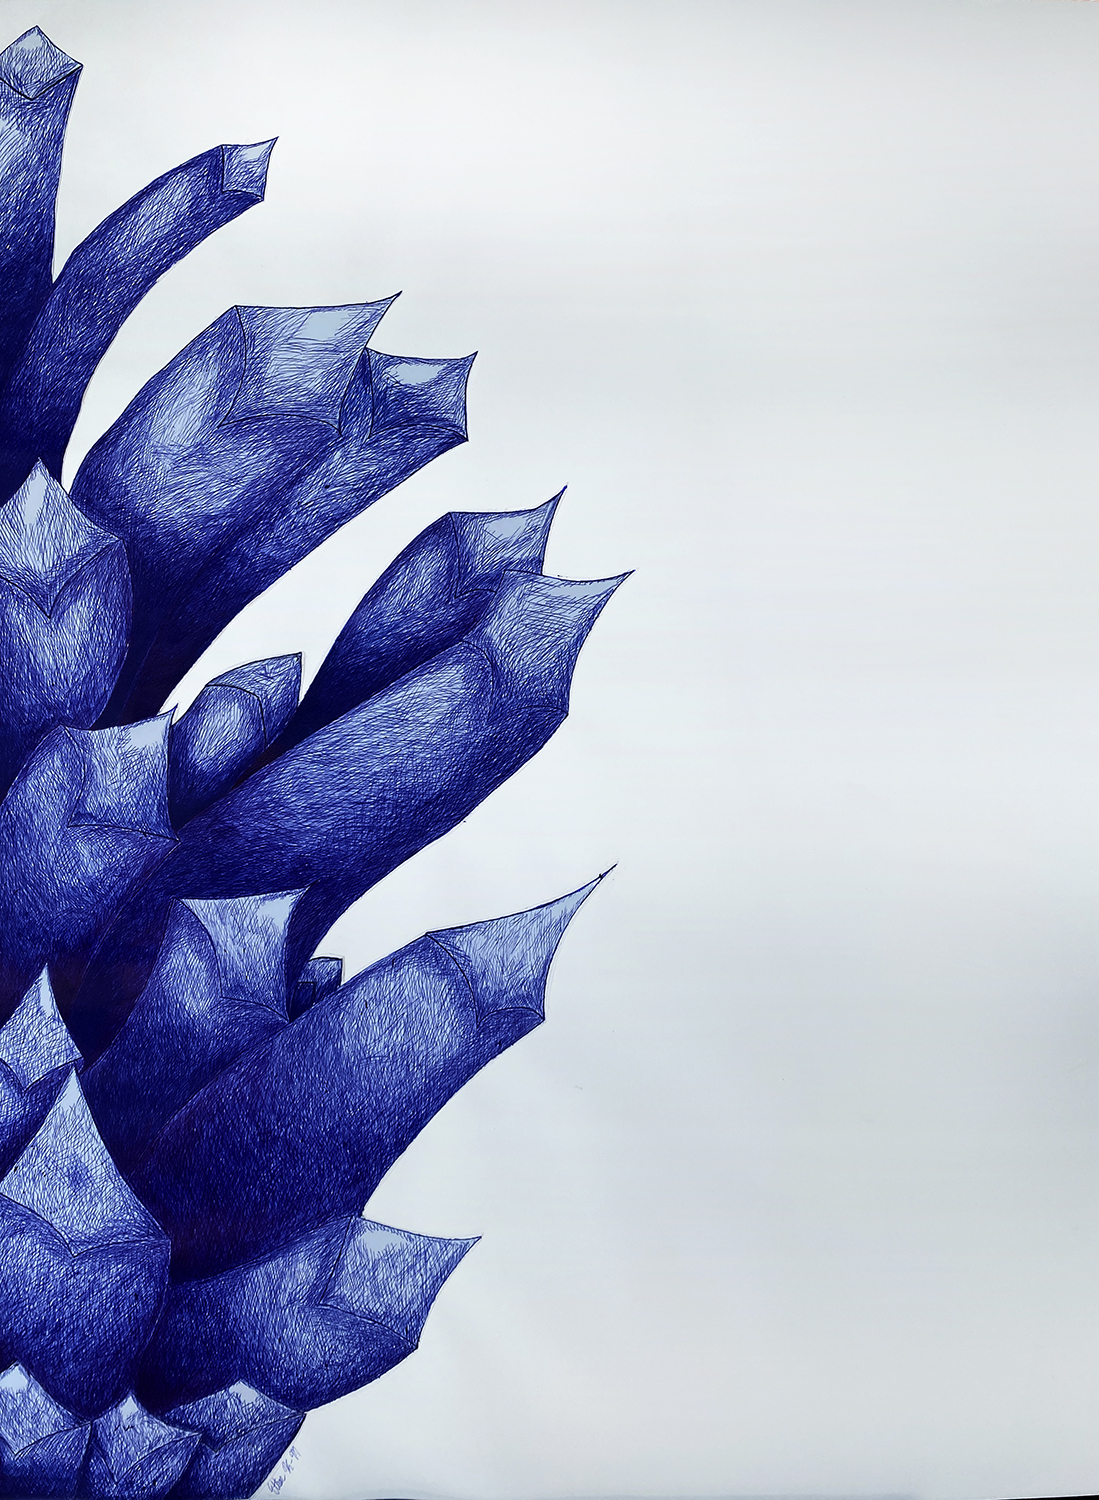 A Blue Pinecone by Ethan Kennedy-Munsterman, ballpoint pen on paper - Banting Memorial High School